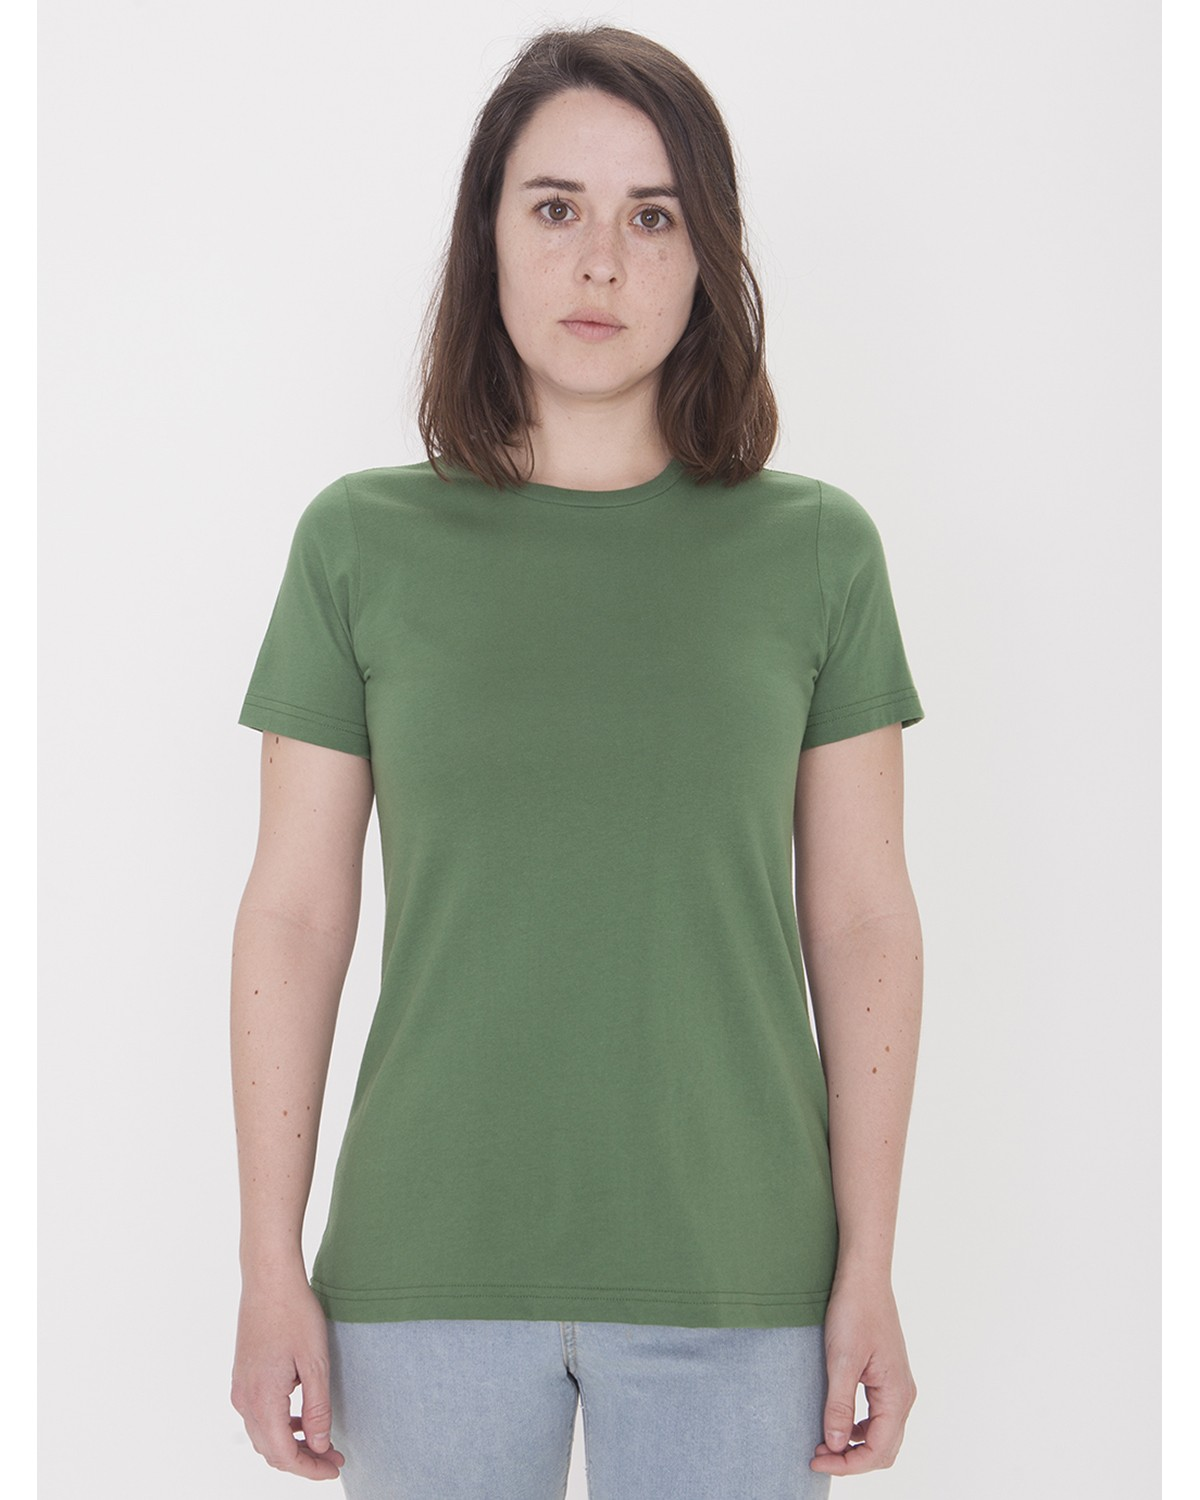 23215OW American Apparel PINE